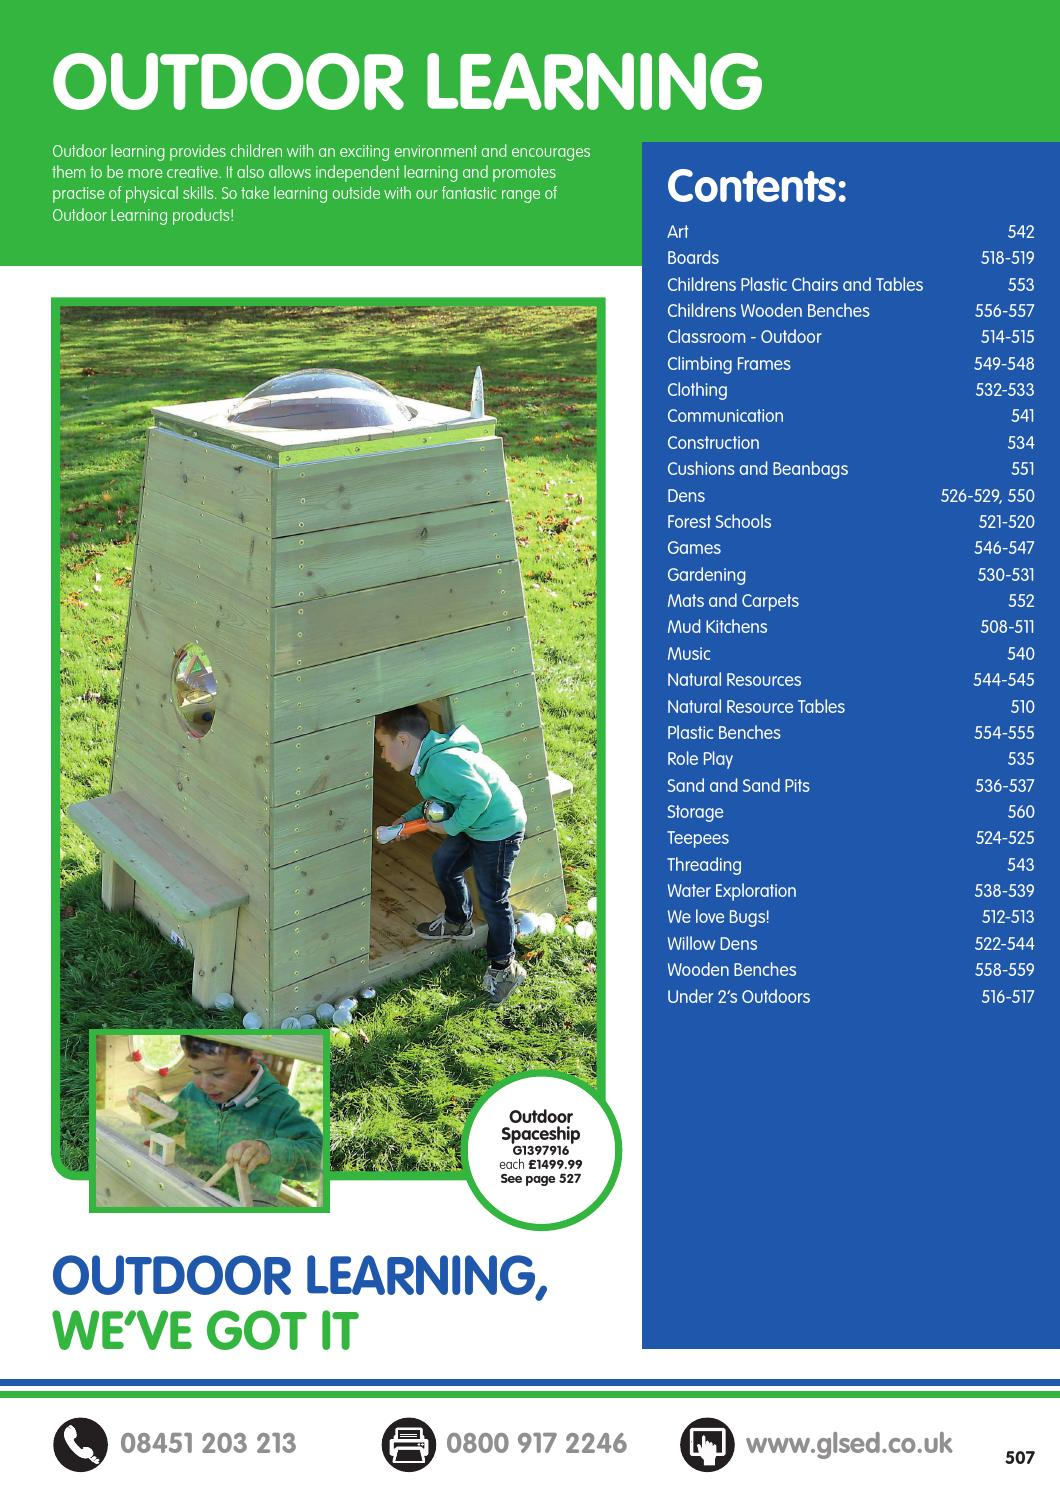 gls educational supplies catalogue 2015 16 outdoor learning by